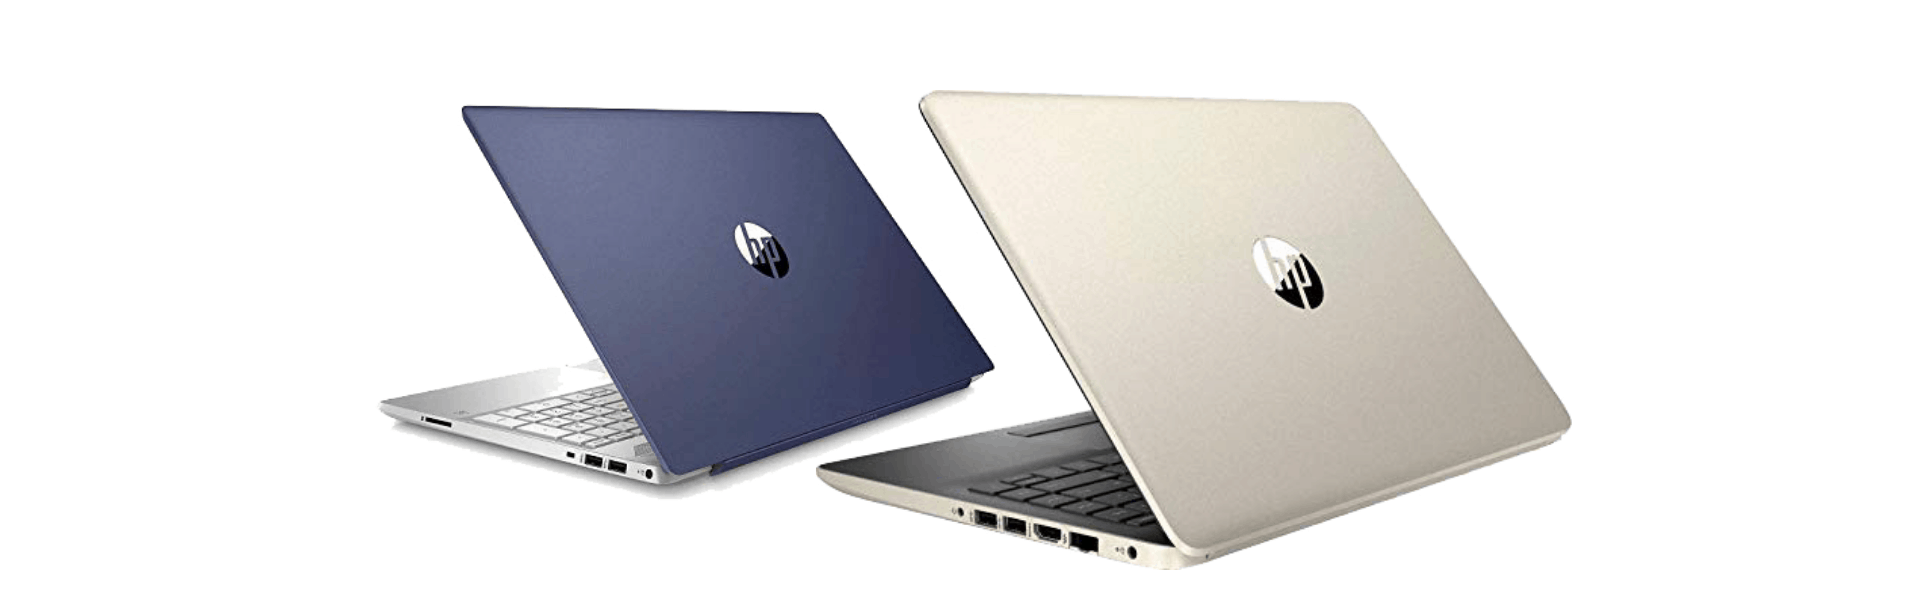 best thin laptops under 500